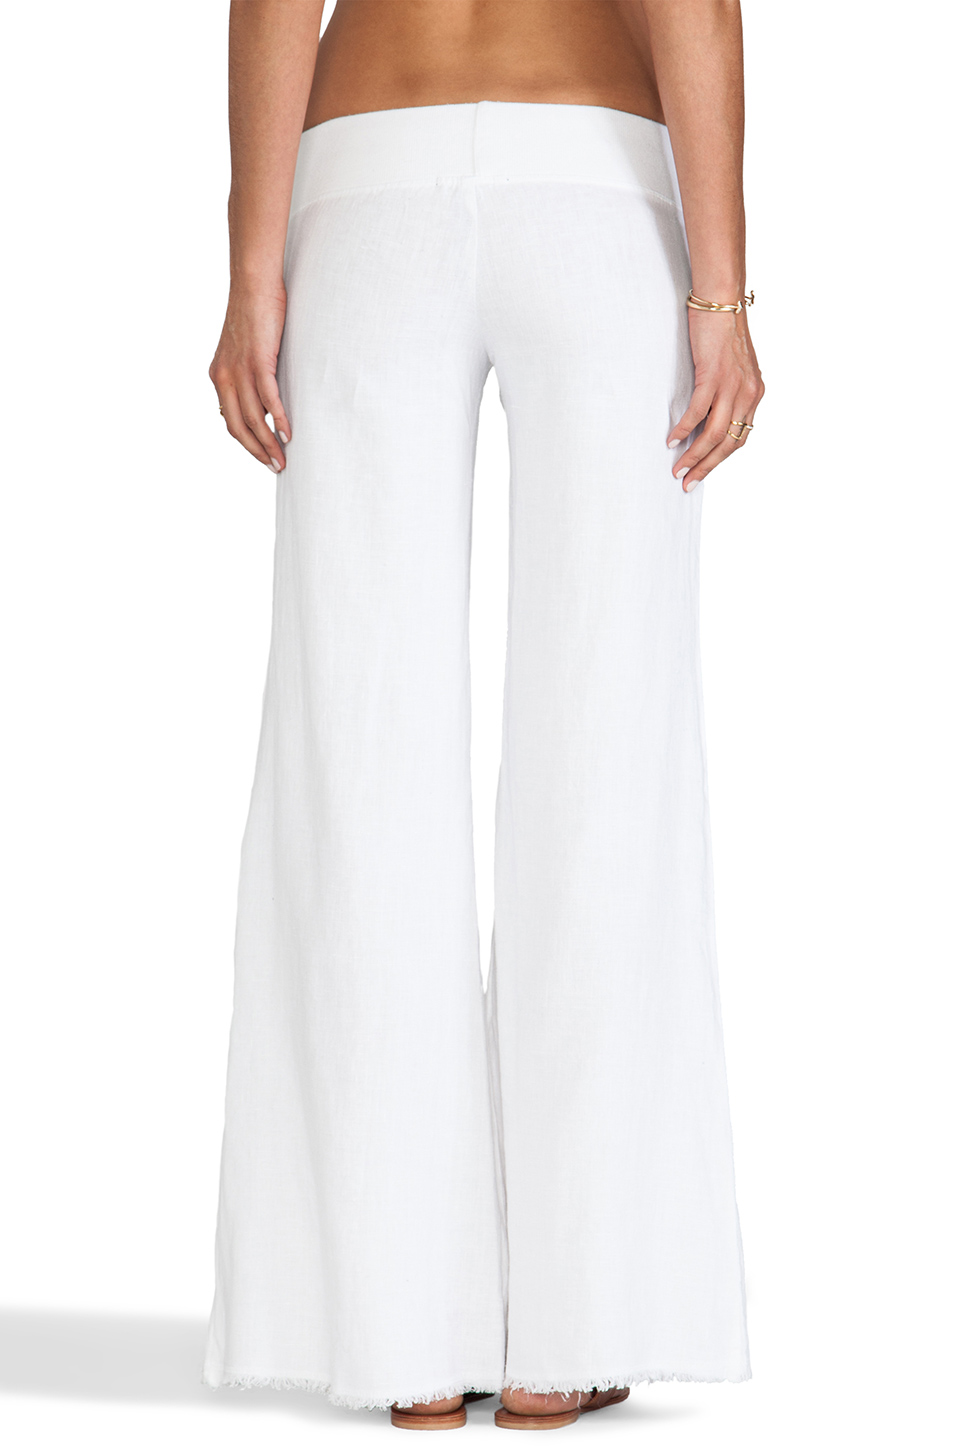 New Linen Pants These Look So Comfy I Want Some Right Now